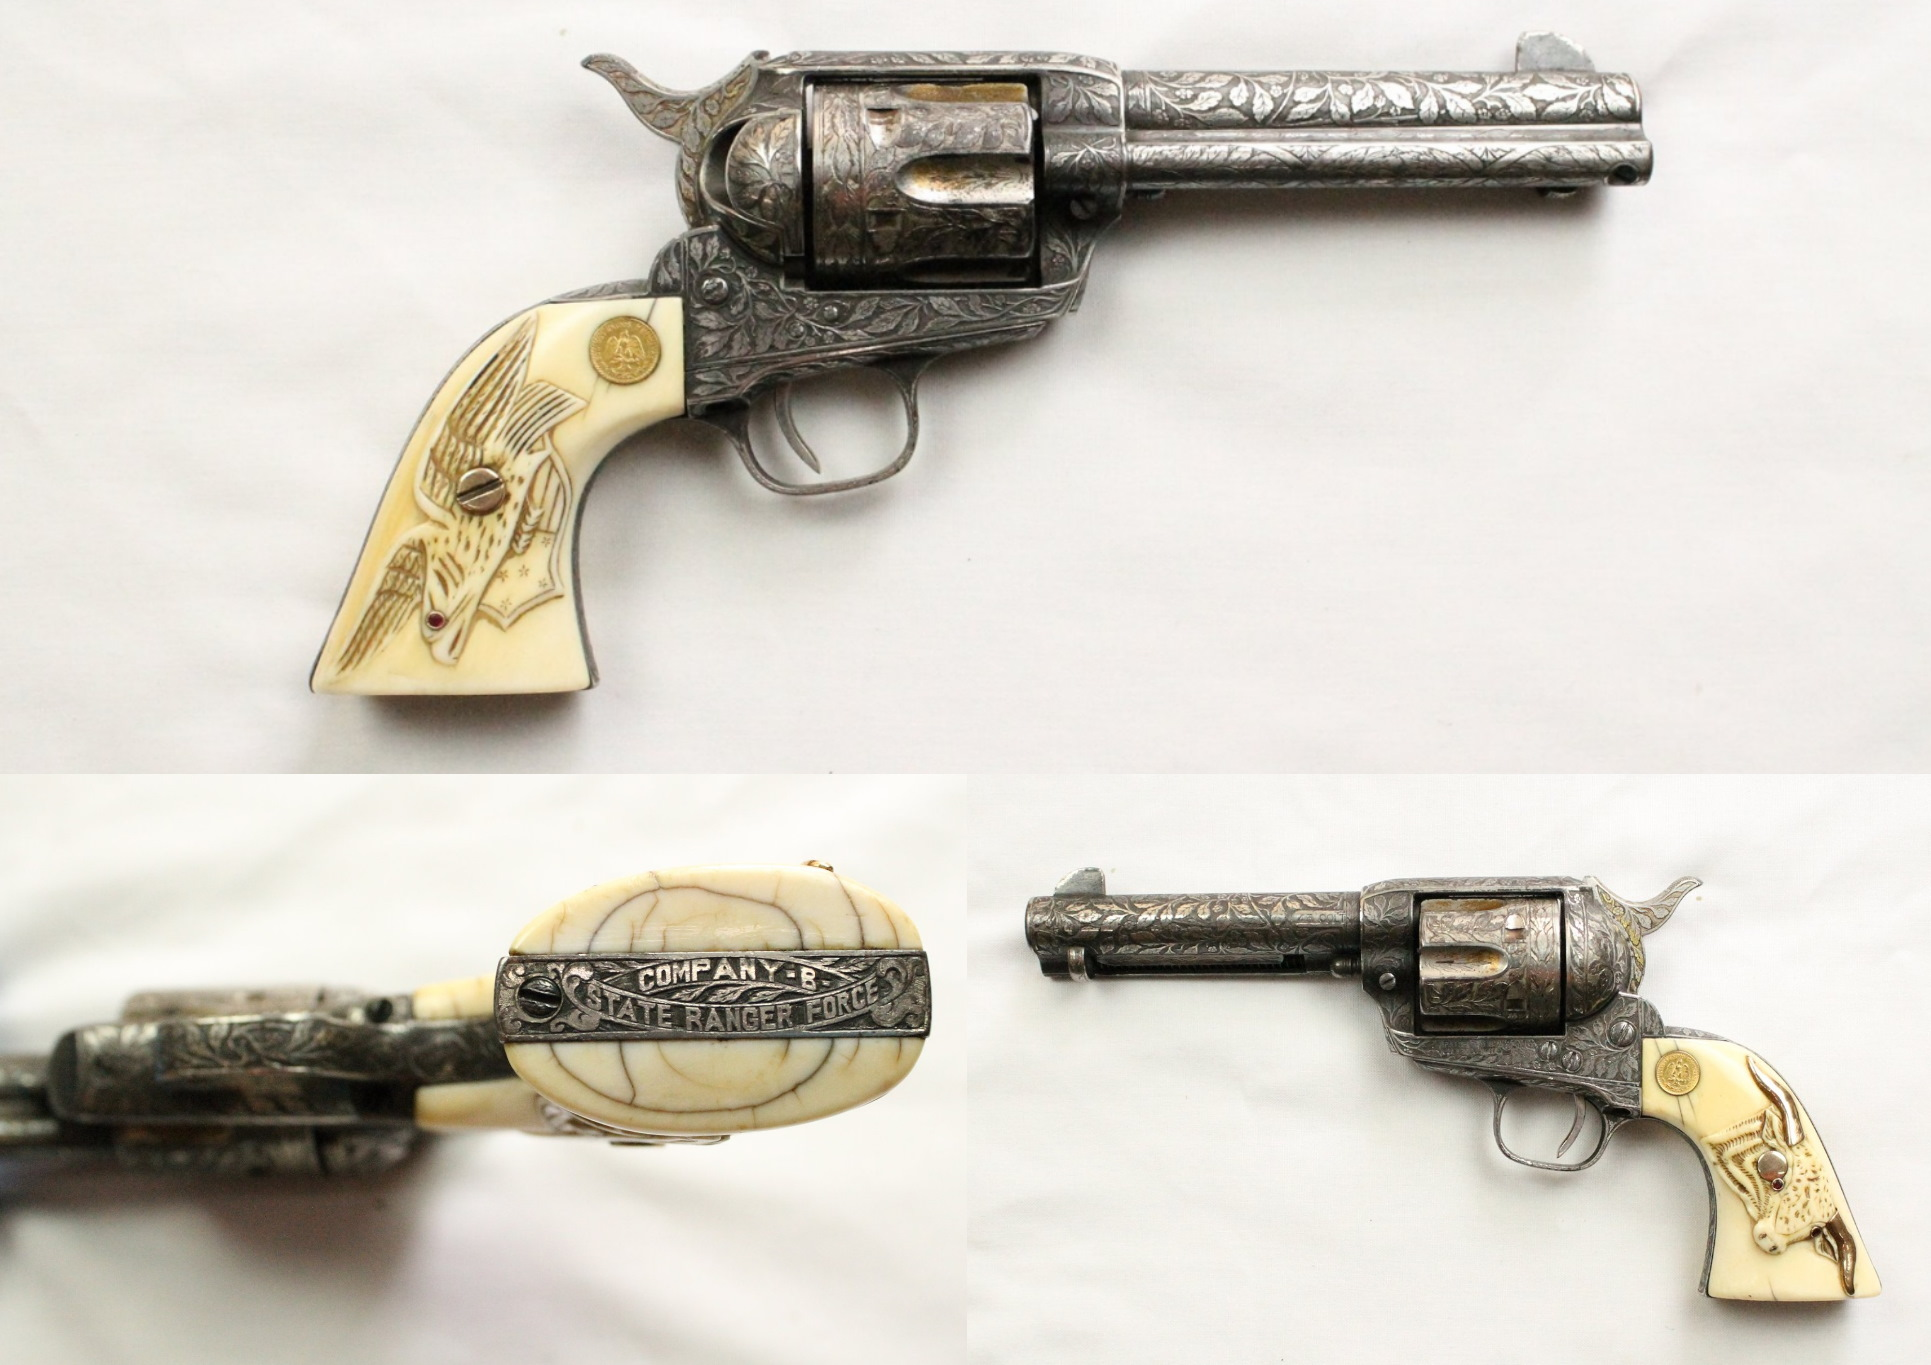 """A heavily decorated Colt pistol with a silver metal body and bone grips. There is a carved leave motif on the body of the gun, an eagle carved on to on side of the grip and a longhorn on the other. On the butt of the gun it says """"Company B State Ranger Force""""."""